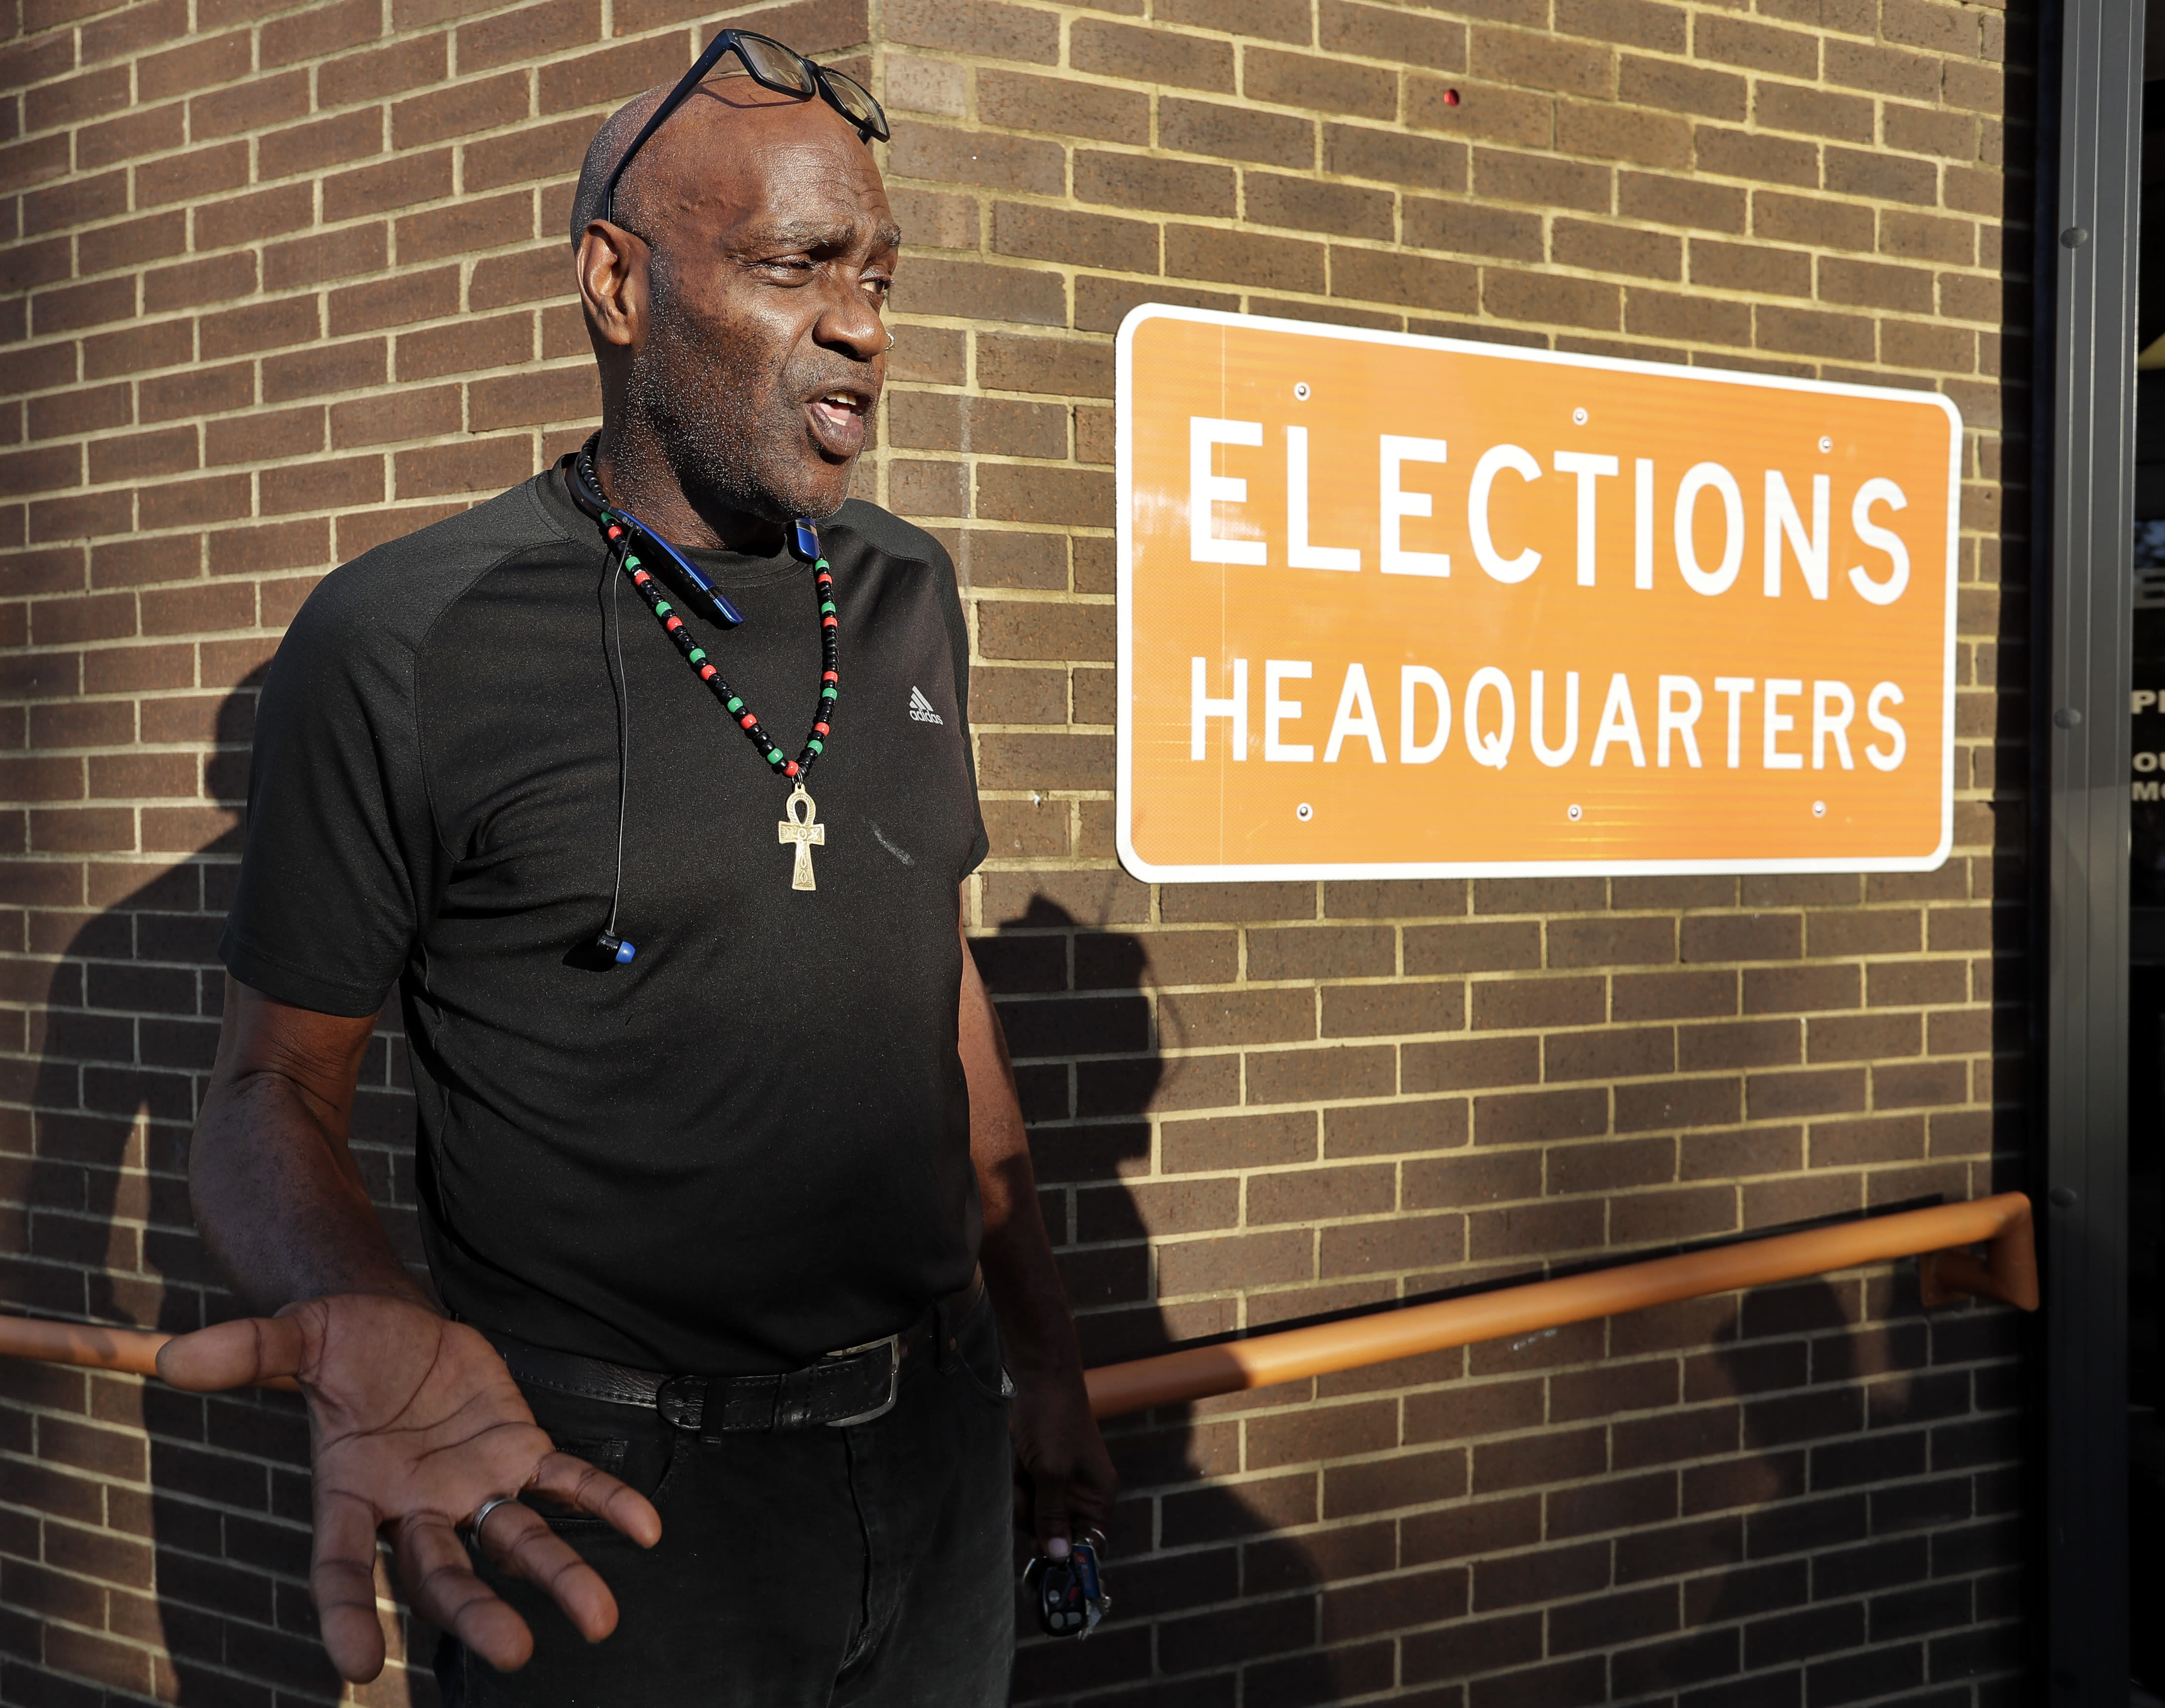 CORRECTS LAST NAME TO ECKFORD NOT ECKERD - Former felon Robert Eckford talks with reporters after registering to vote at the Supervisor of Elections office Tuesday, Jan. 8, 2019, in Orlando, Fla. Former felons in Florida began registering for elections on Tuesday, when an amendment that restores their voting rights went into effect. (AP Photo/John Raoux)